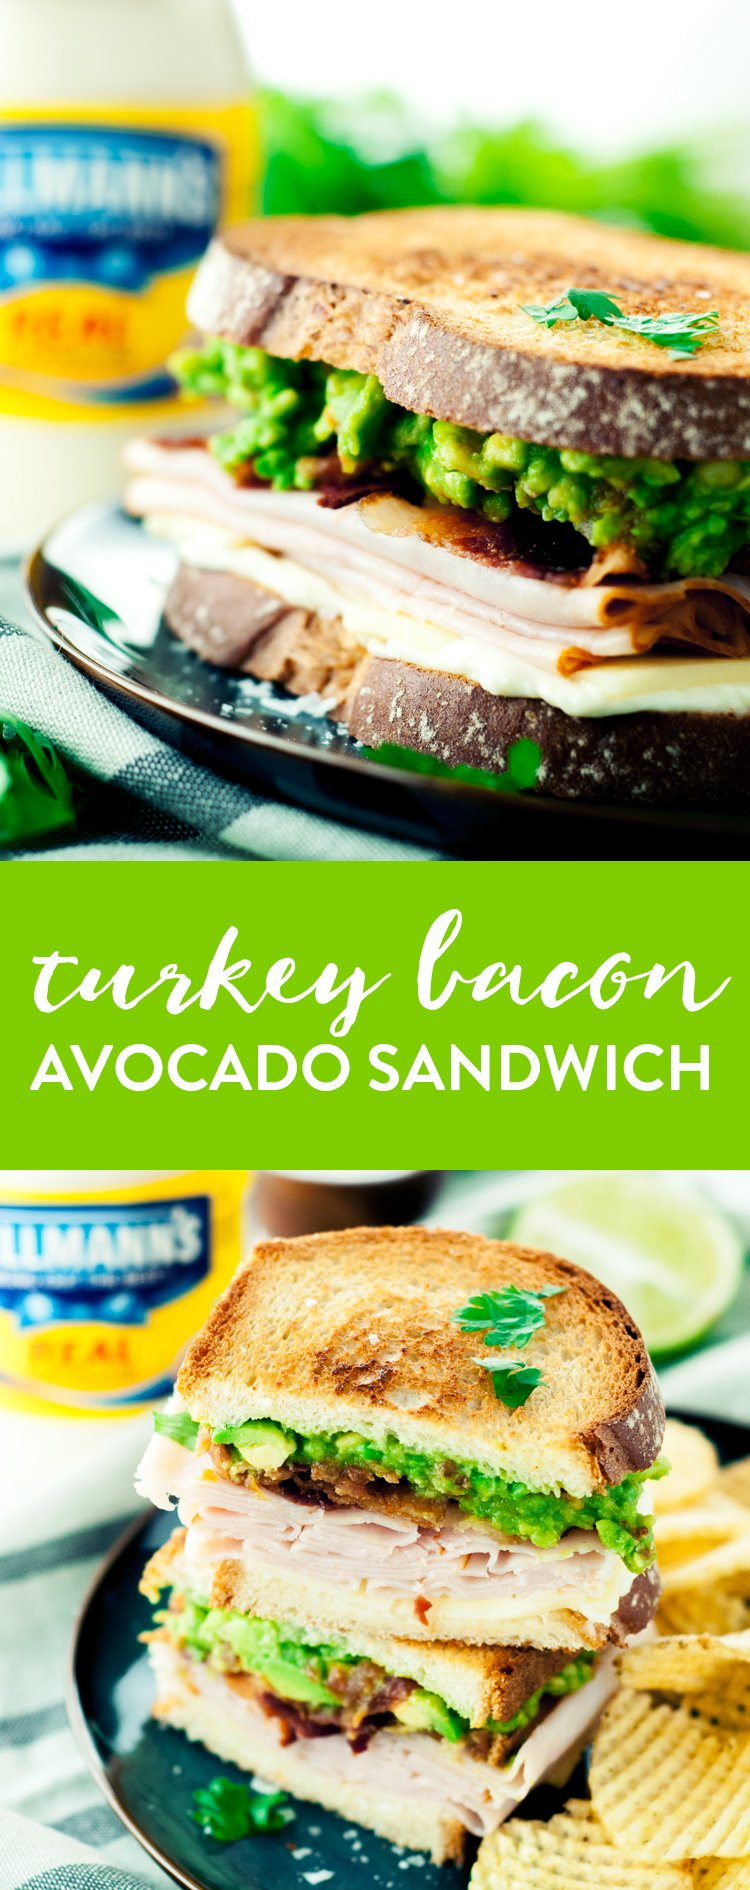 Get your lunch on with this amazingly delicious and simple Turkey Bacon Avocado Sandwich! Give it a fun twist with guacamole instead of traditional sliced avocado! | asimplepantry.com